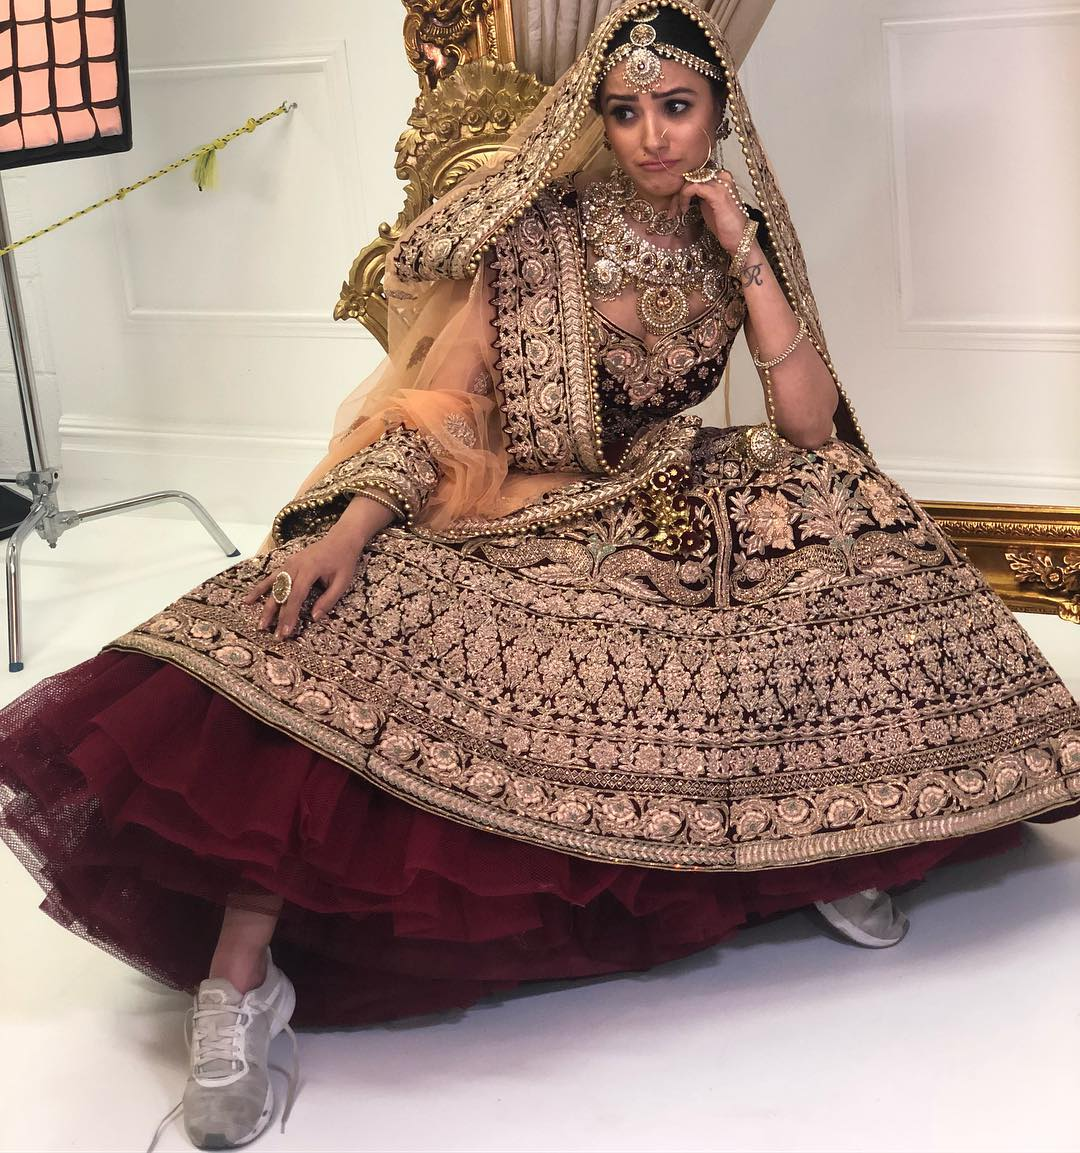 Anita Hassanandani as a runaway bride is a vision out of our dream ...